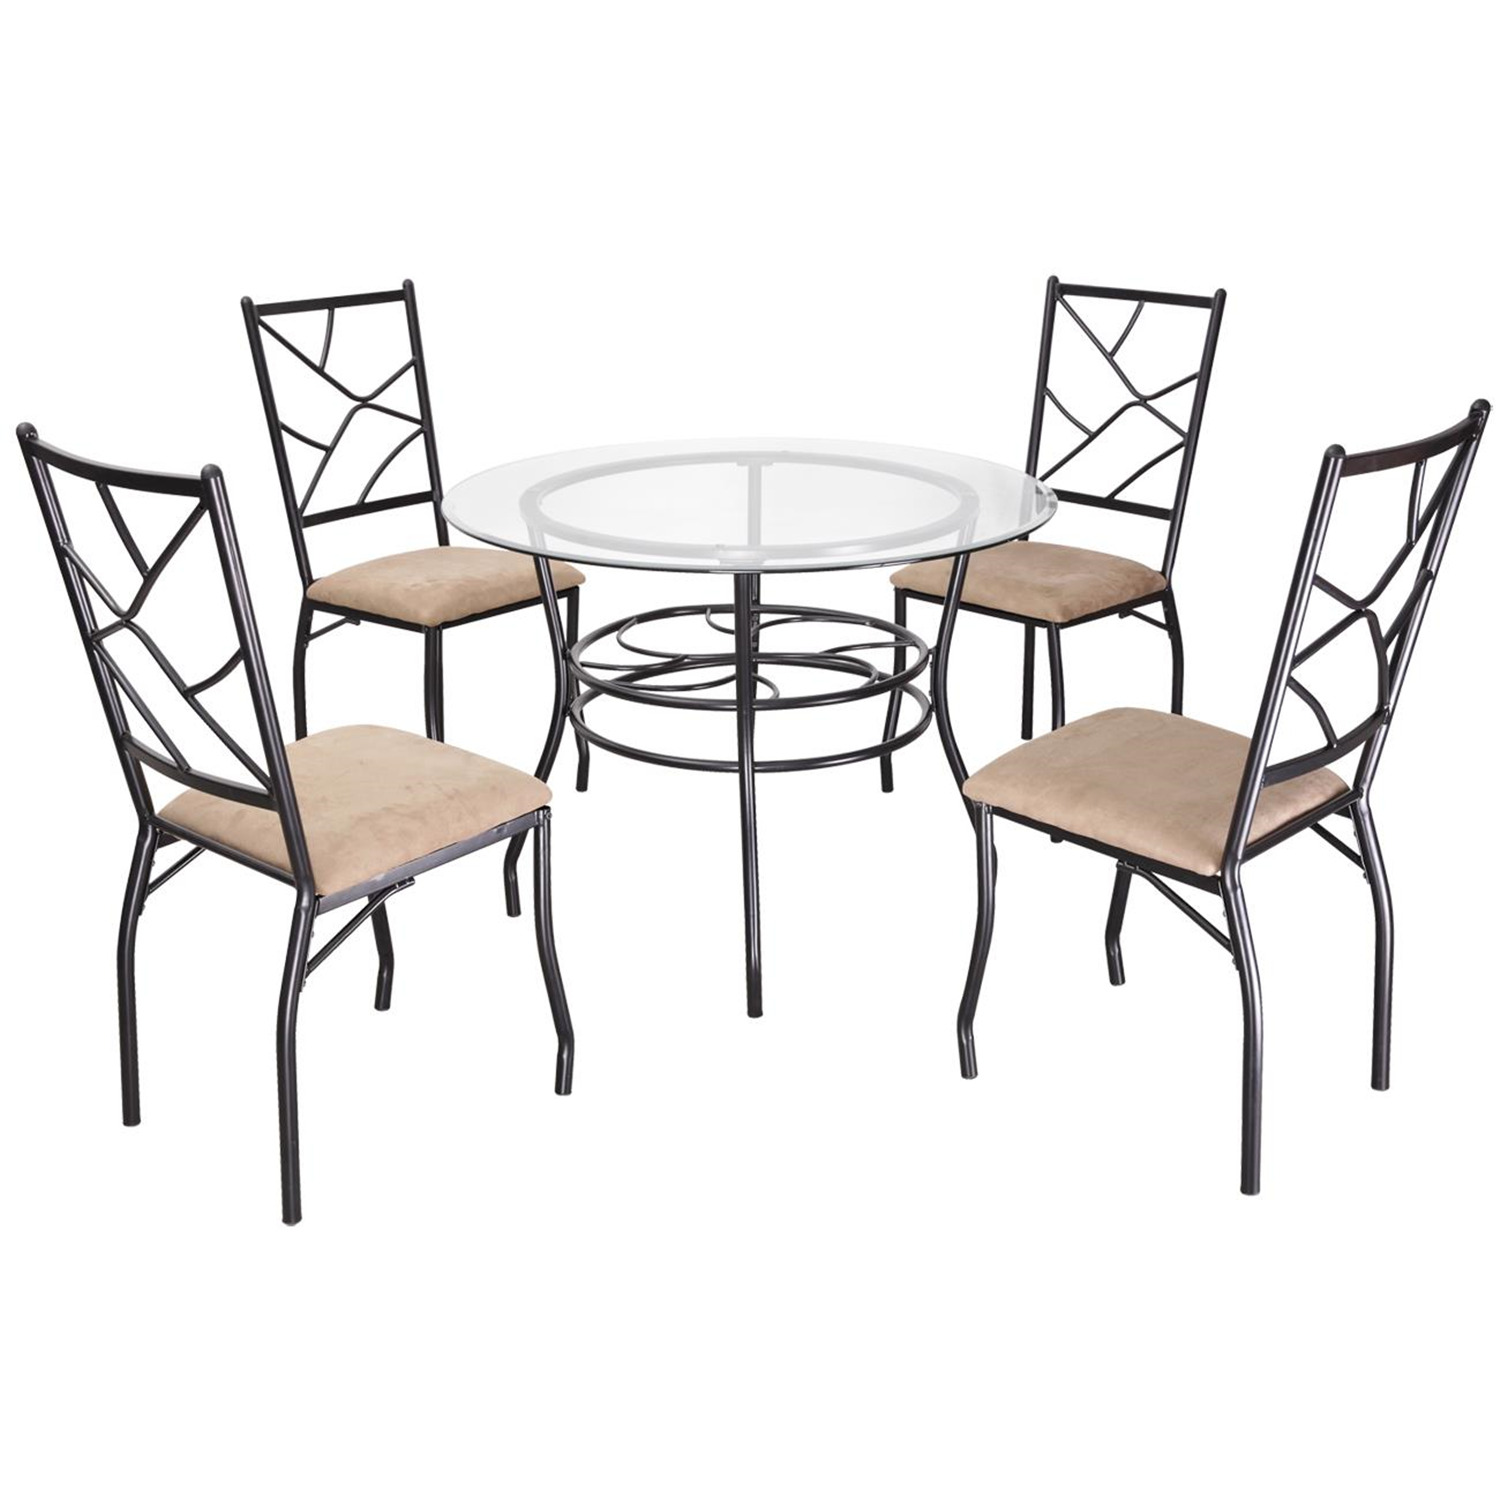 Home Source Round Glass Dining Table With 4 Armless Chairs